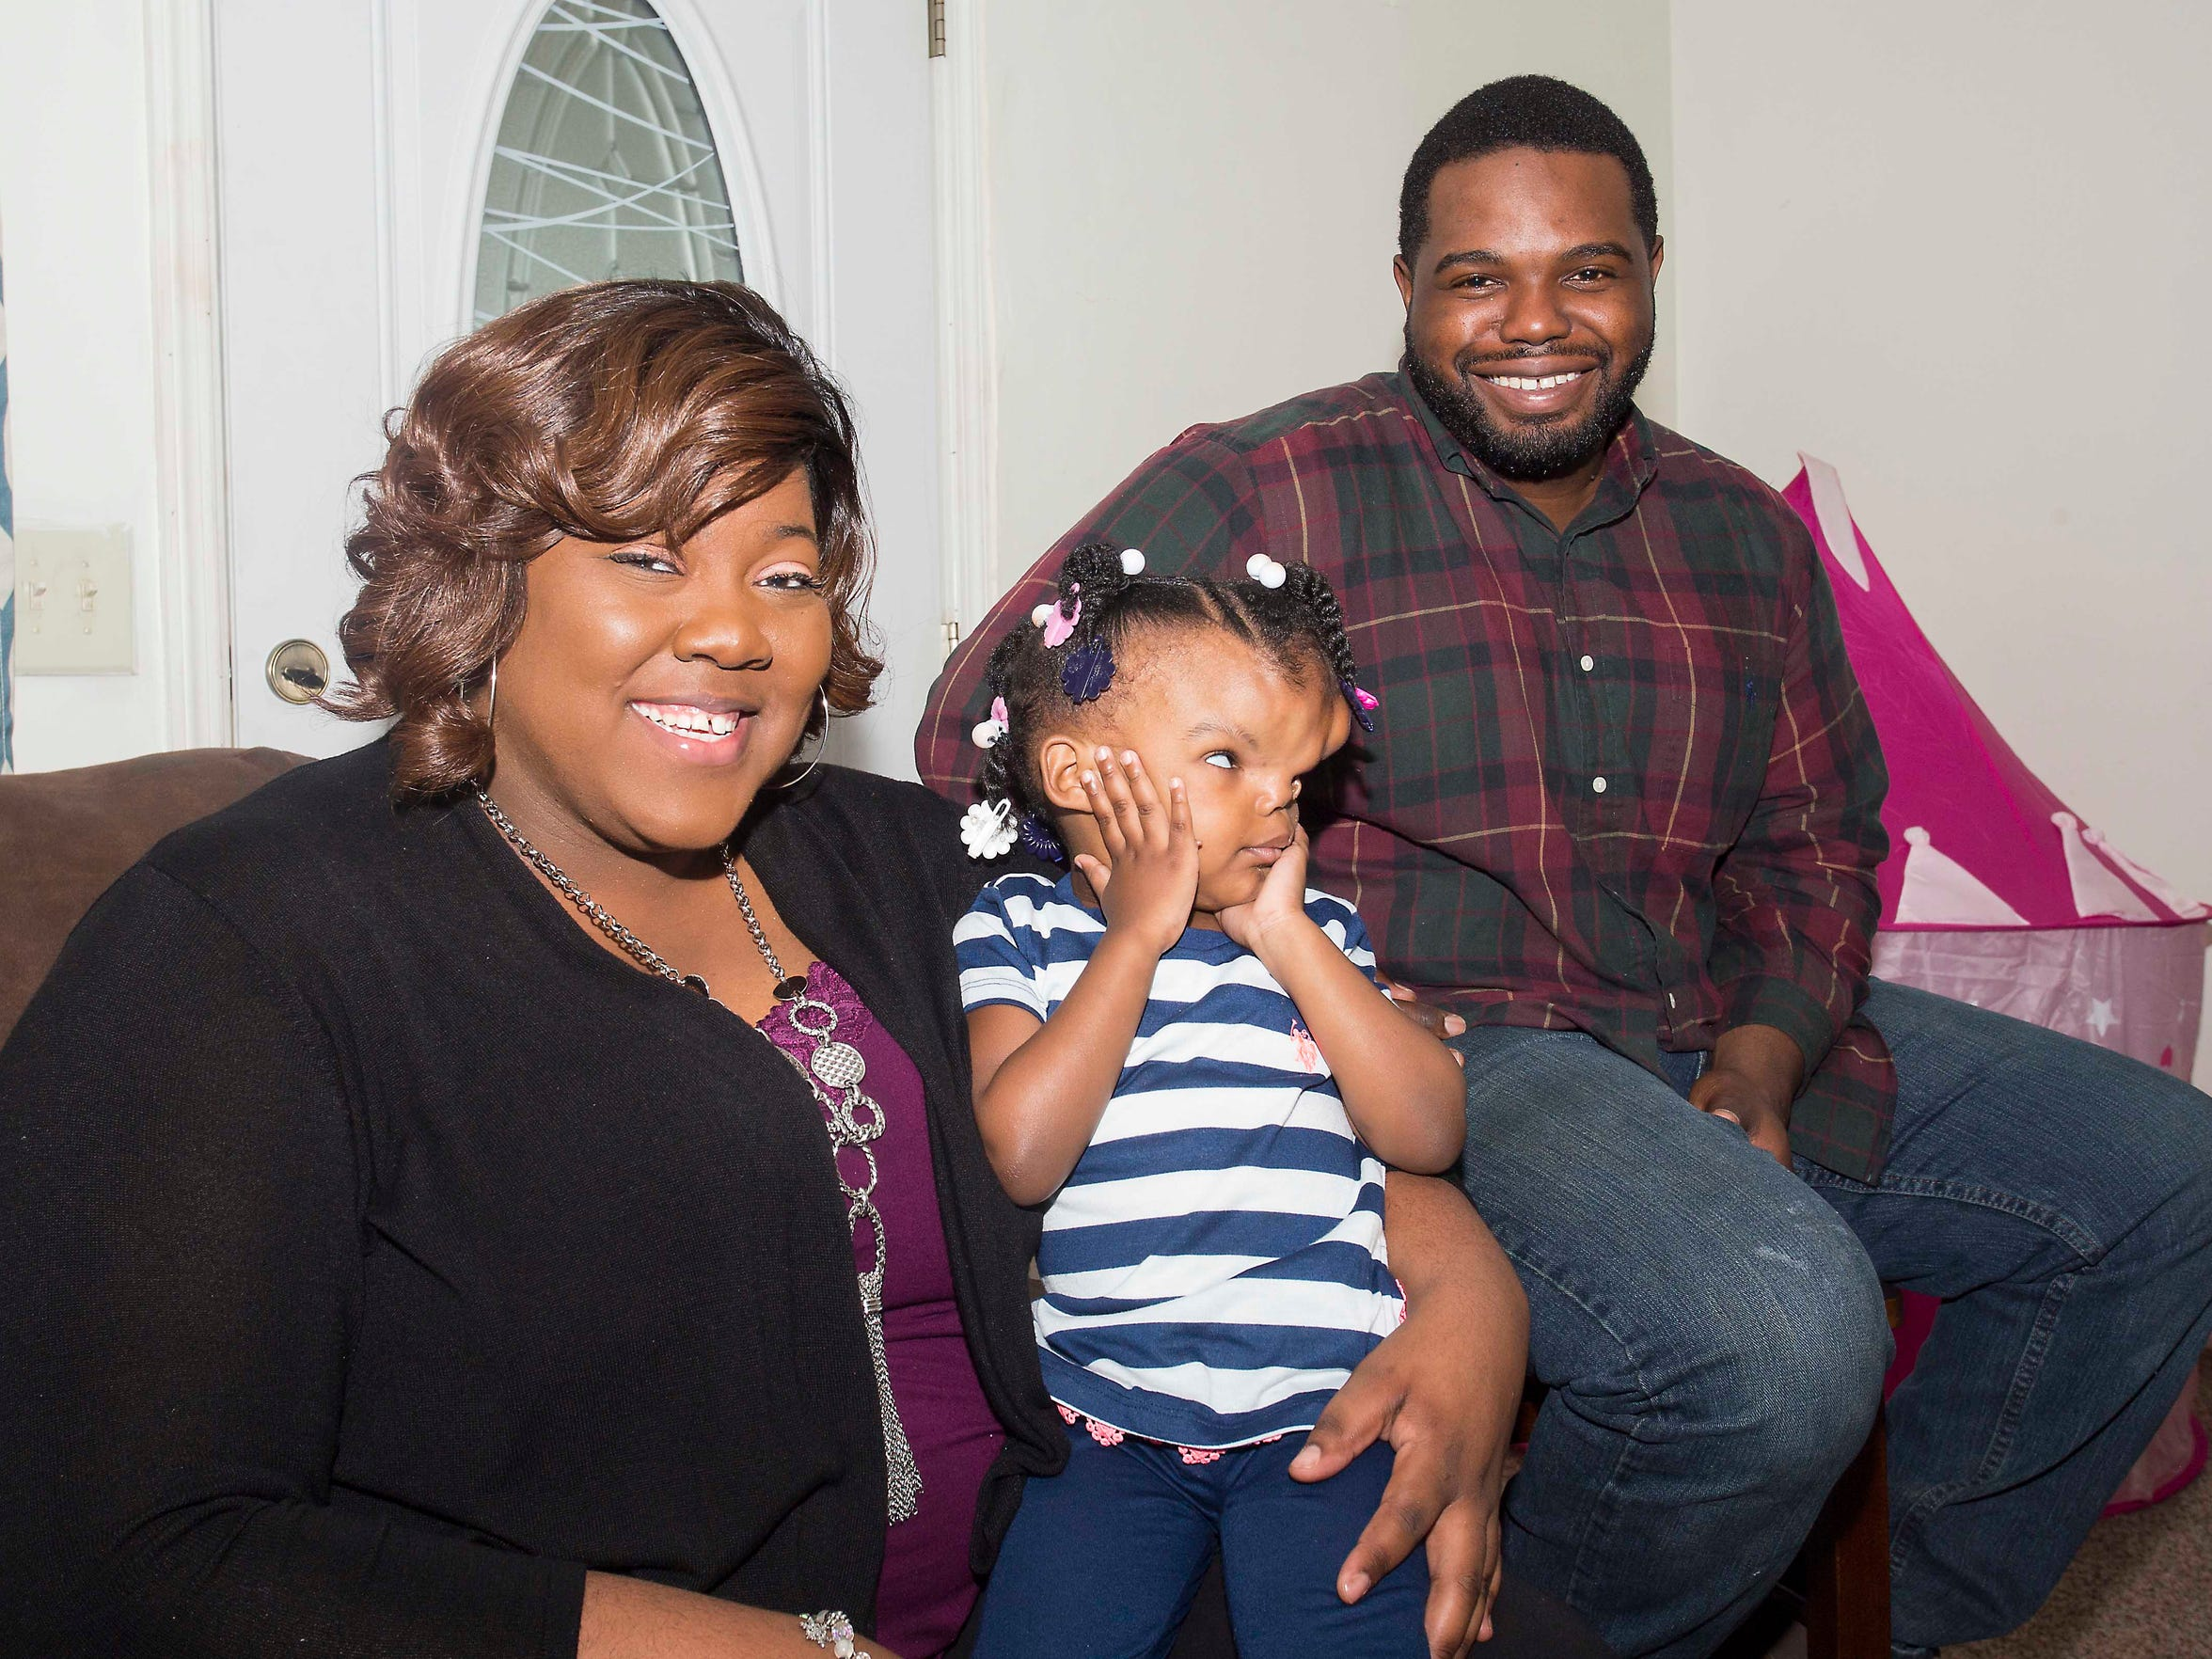 Tishana, left, and Quantrel Alford with their daughter, Zoey Grace Alford.